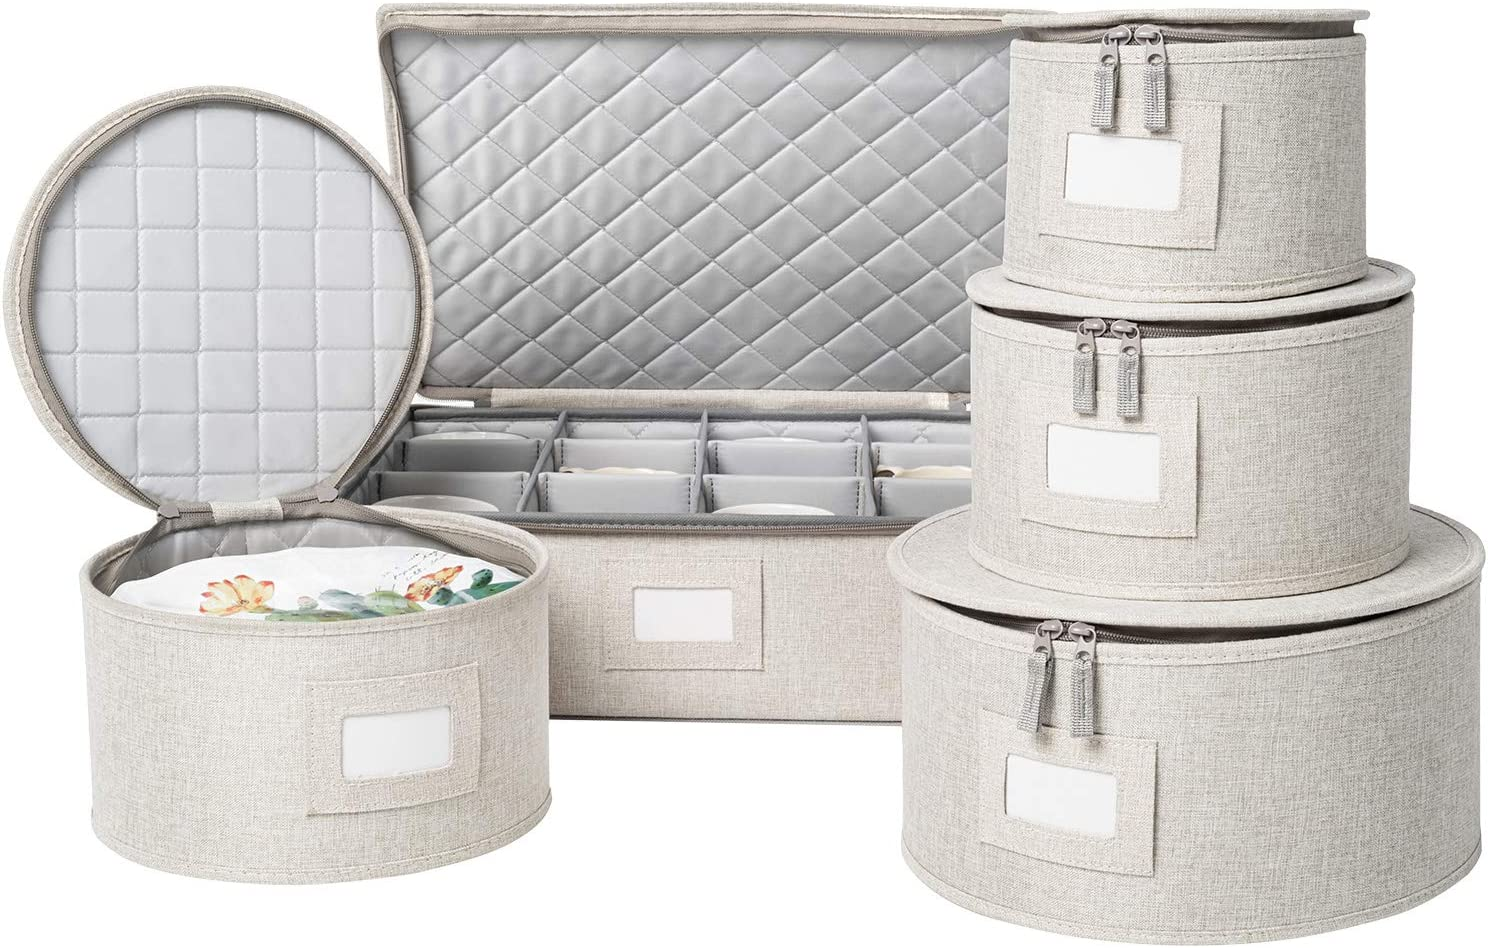 Felt Plate Dividers Included China Storage Set for Dinnerware Storage and Transport Grey